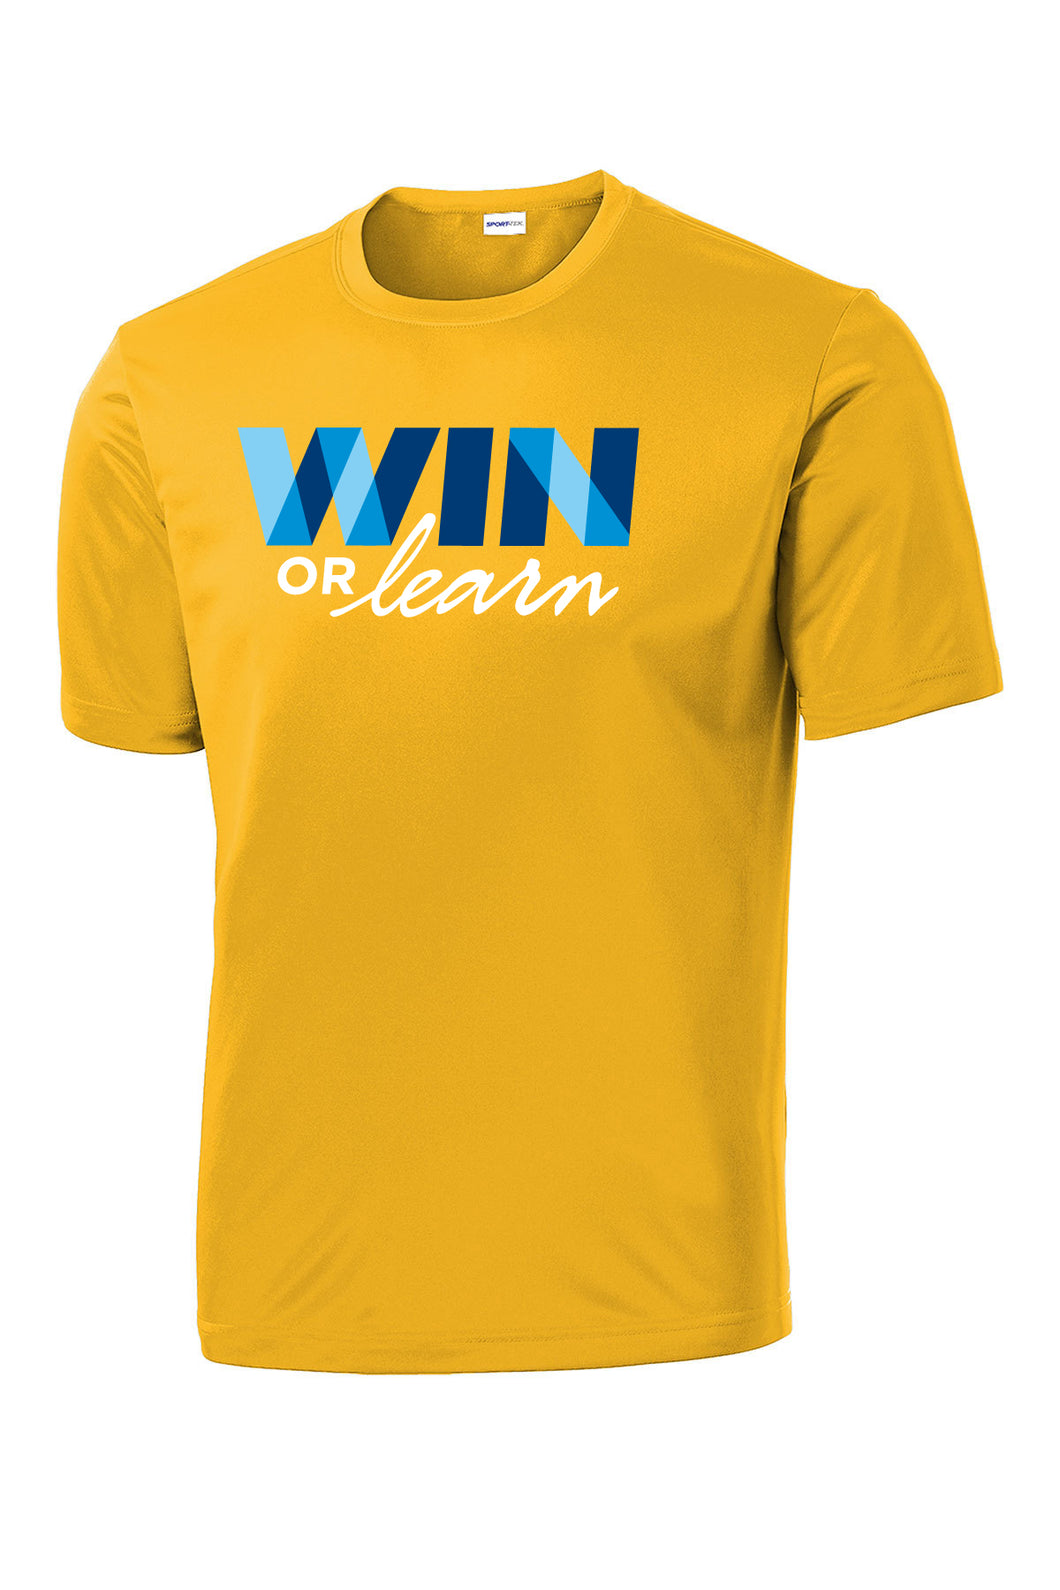 WIN or Learn - Men's Short Sleeve Performance Tee